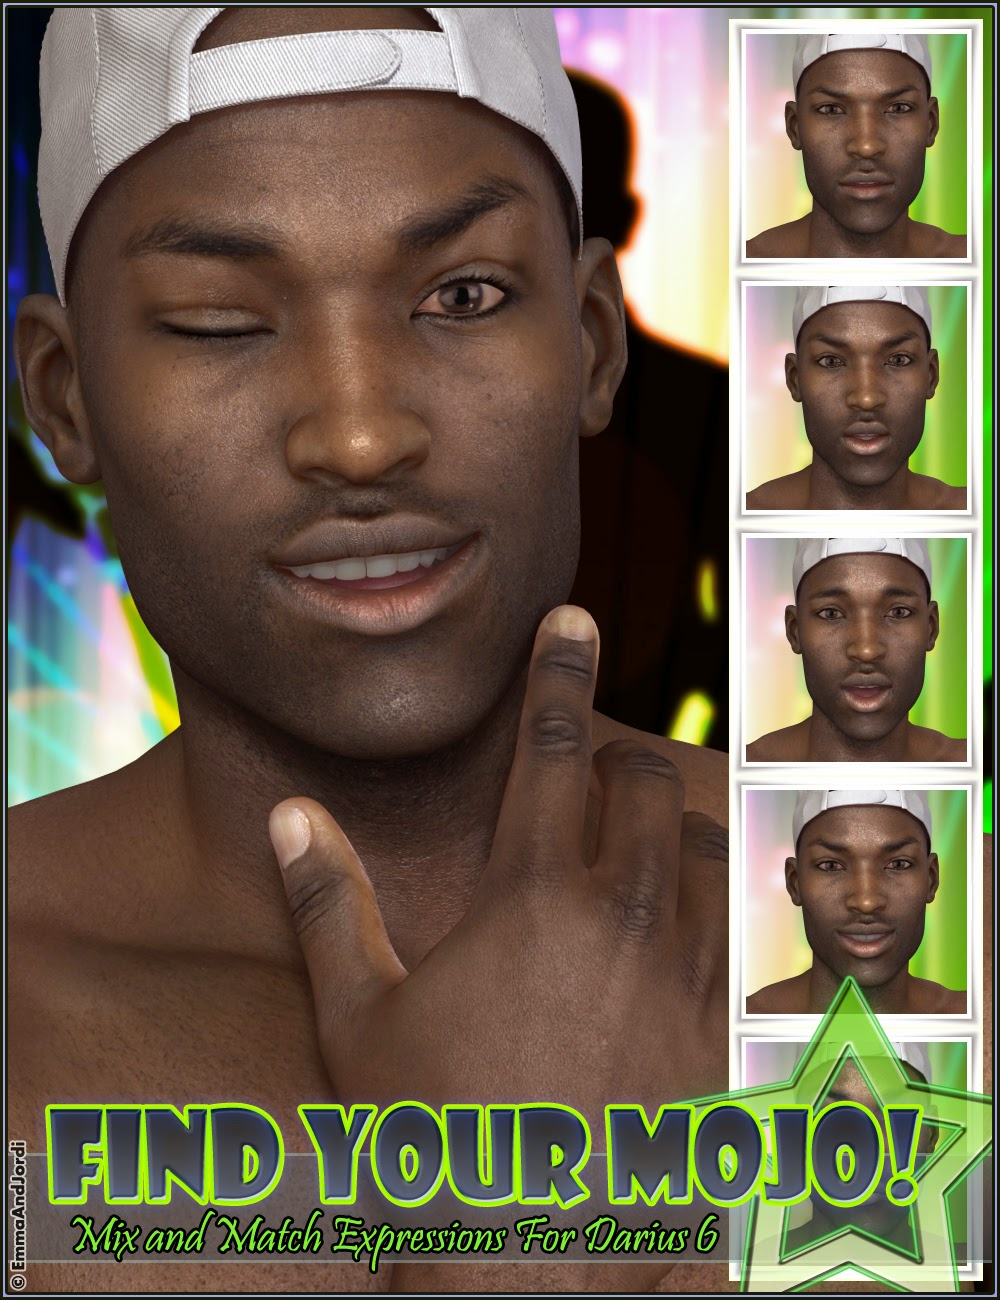 http://www.daz3d.com/find-your-mojo-mix-and-match-expressions-for-darius-6